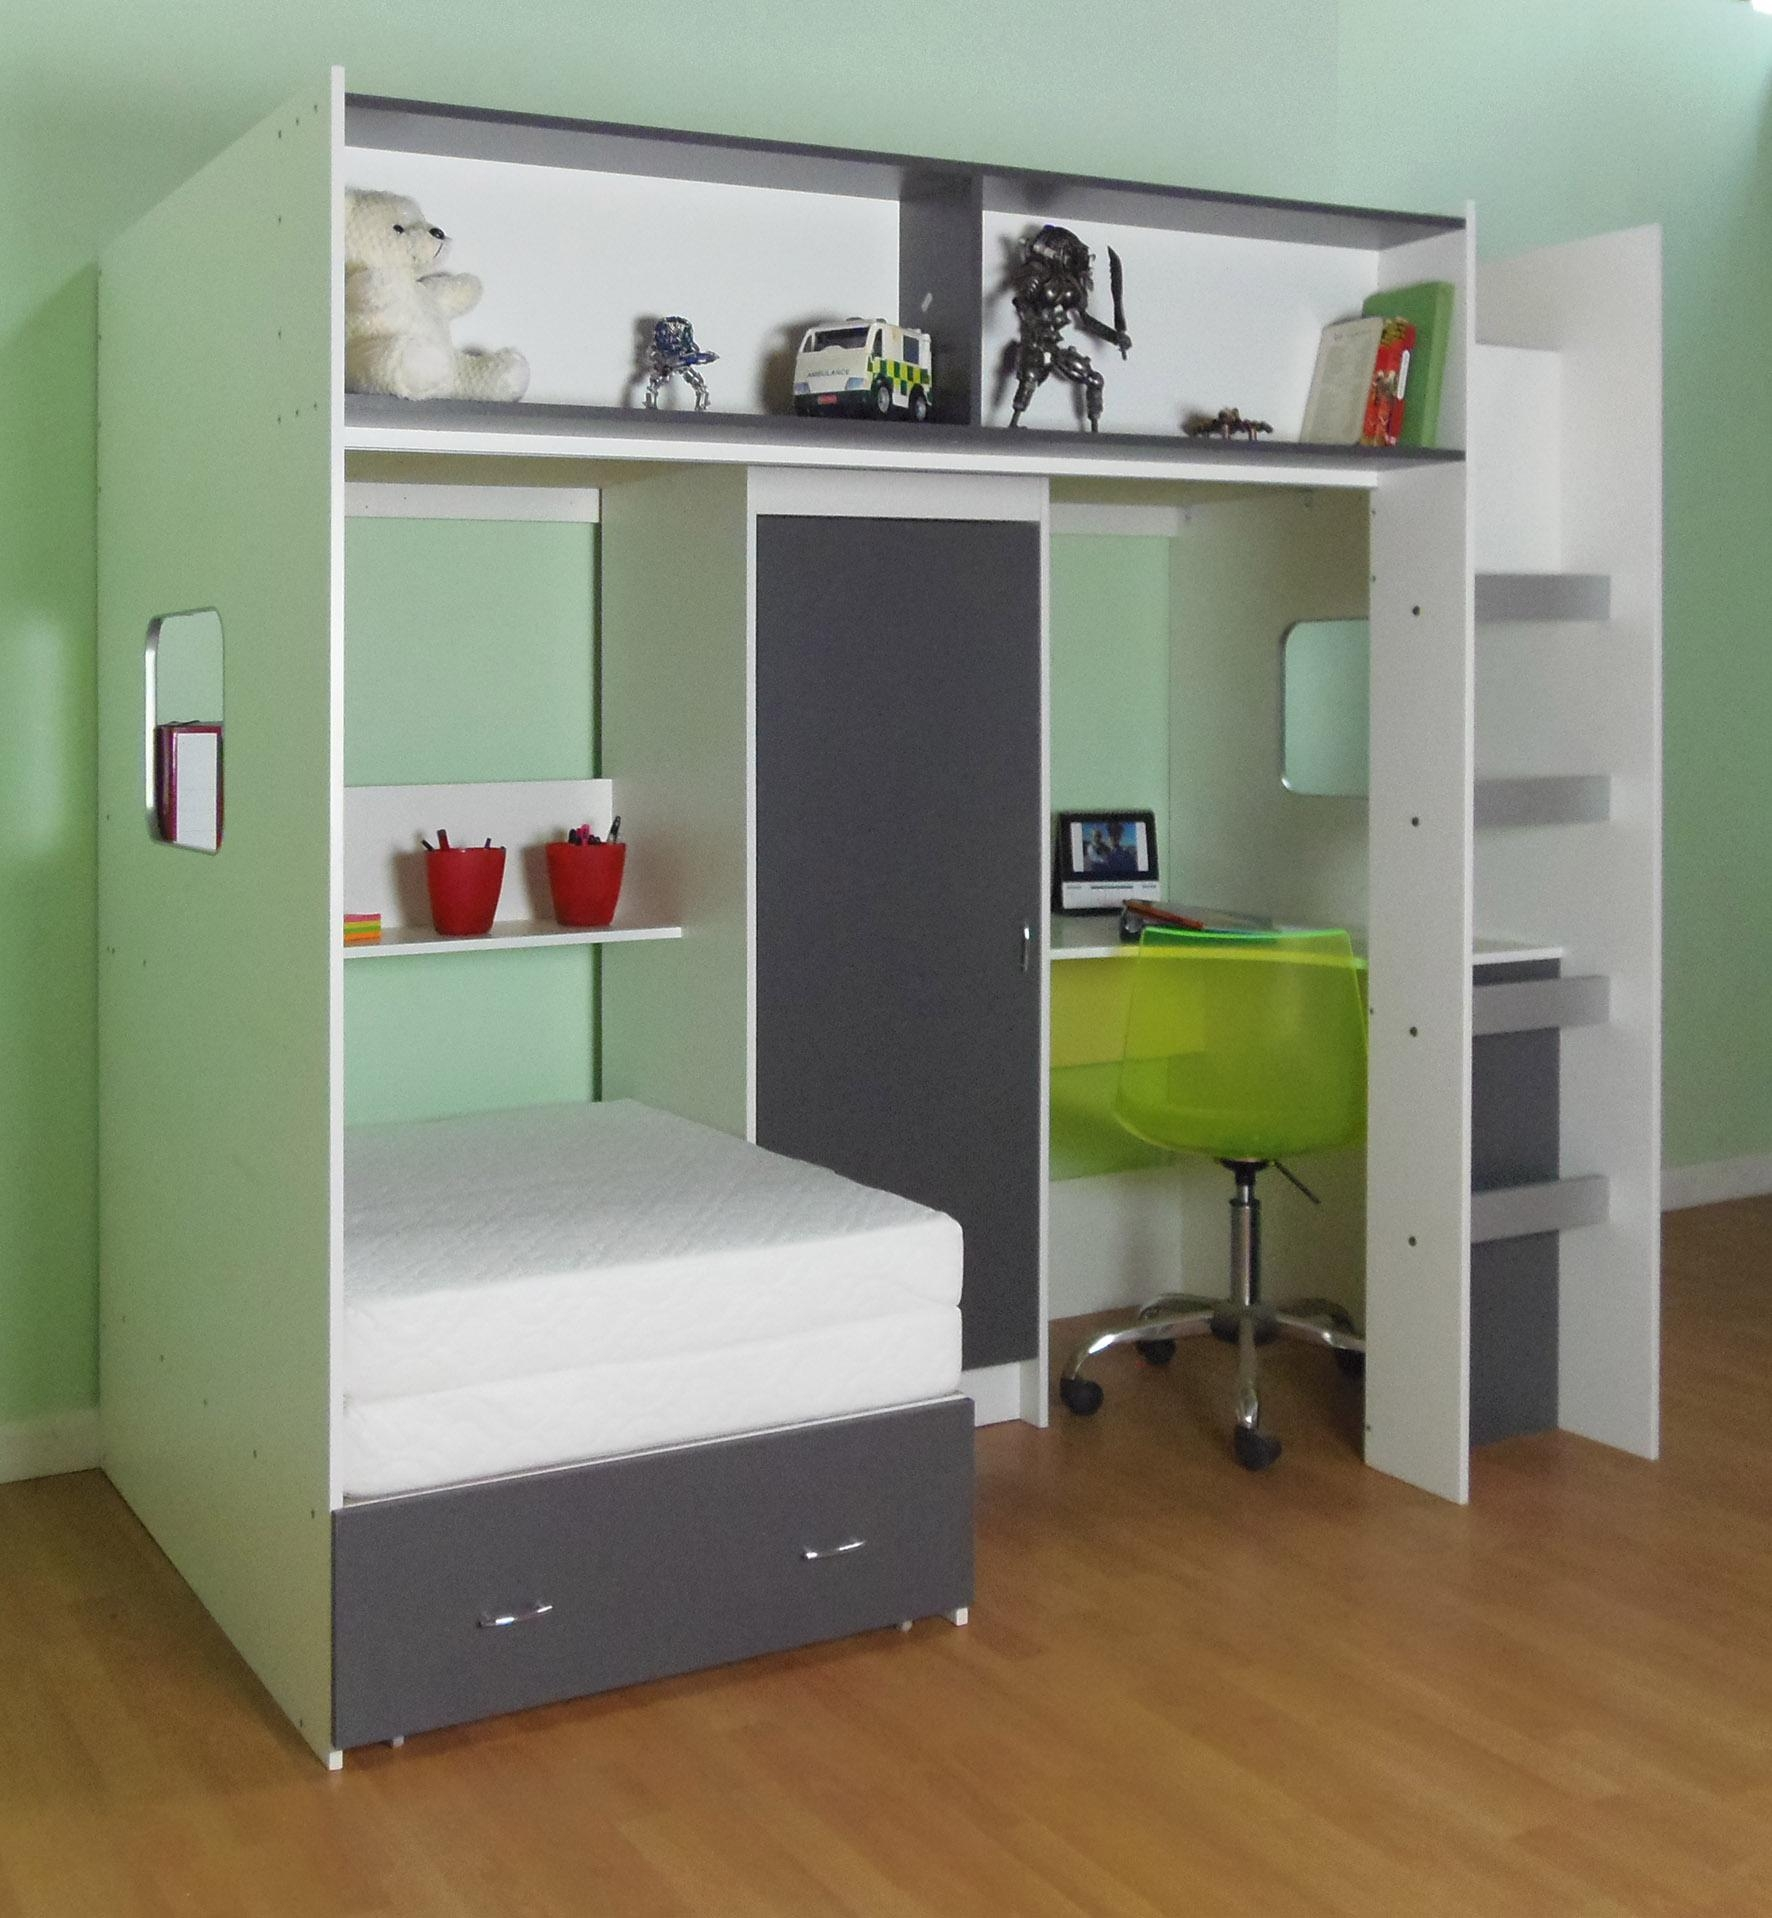 Wooden High Sleeper Bed With Desk And Futon | Roselawnlutheran With High Sleeper Bed With Sofa (Image 20 of 20)